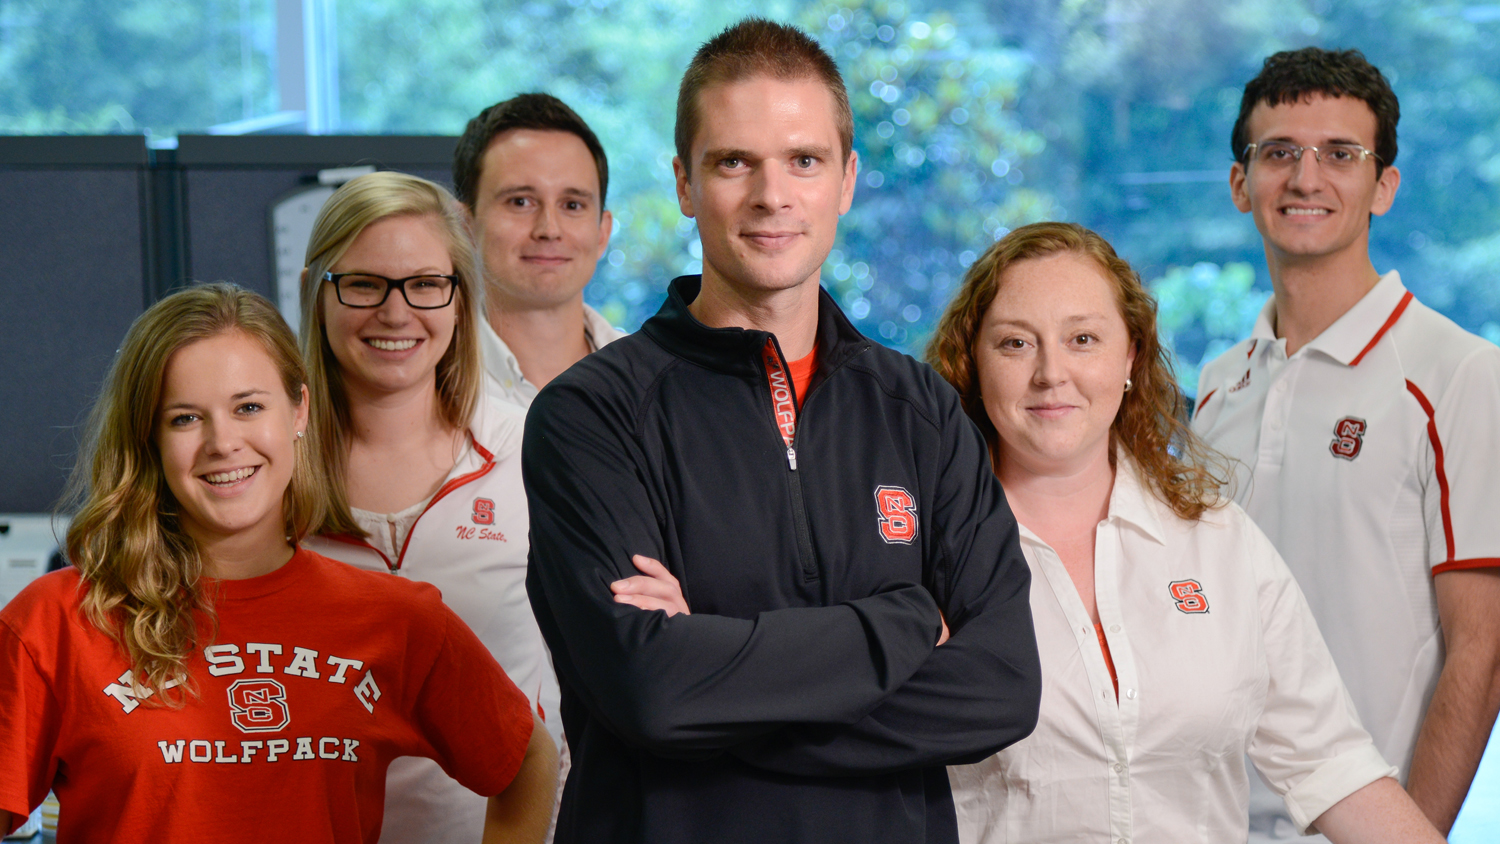 Rodolphe Barrangou, head of NCState's CRISPR Lab with his lab colleagues.